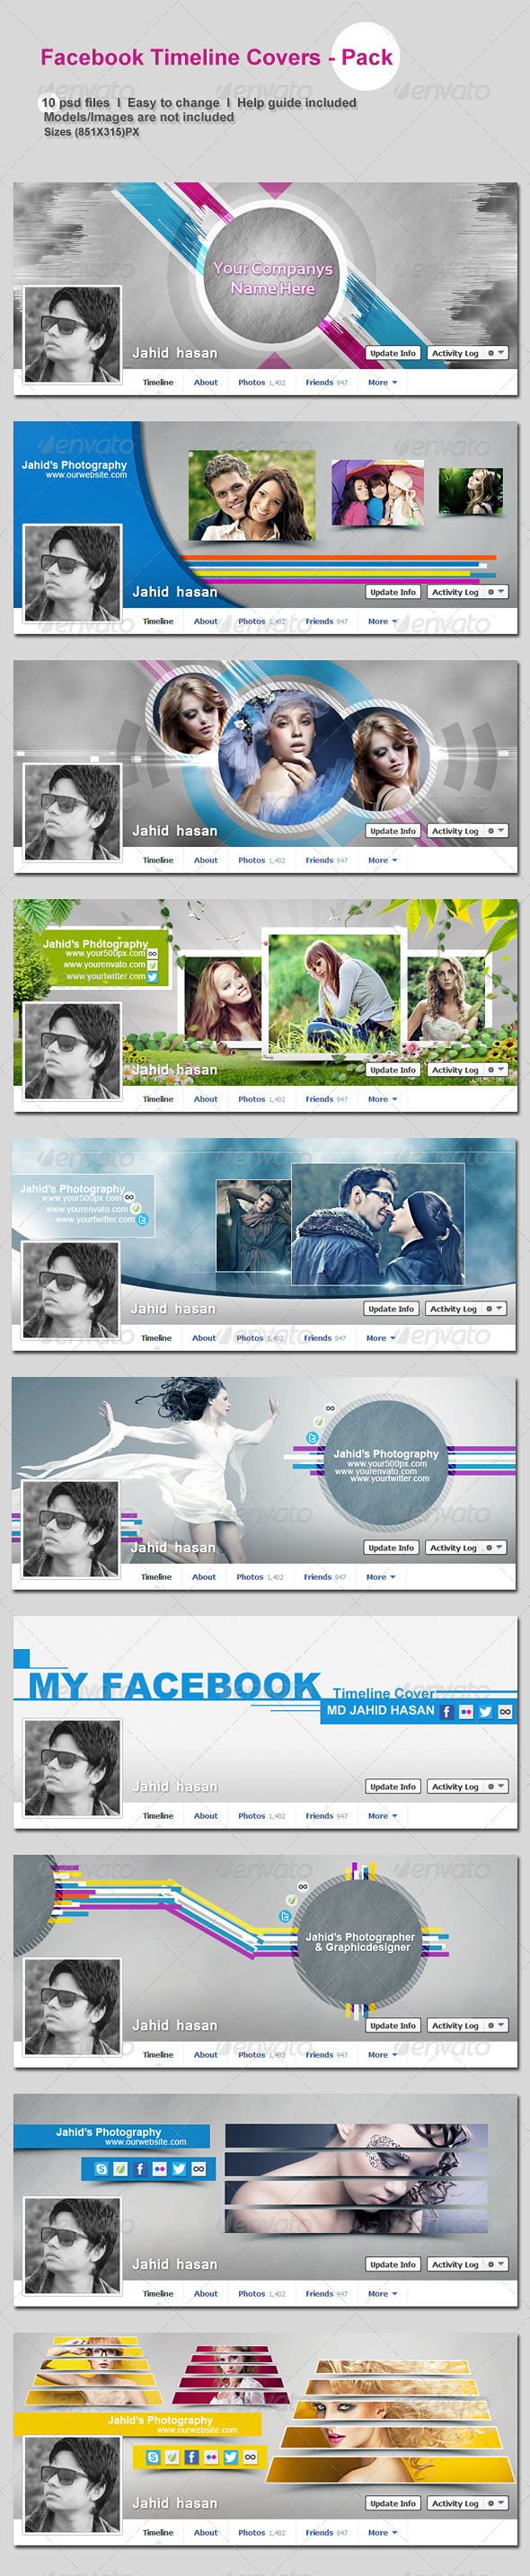 GraphicRiver FaceBook Timeline Covers Pack 5842617